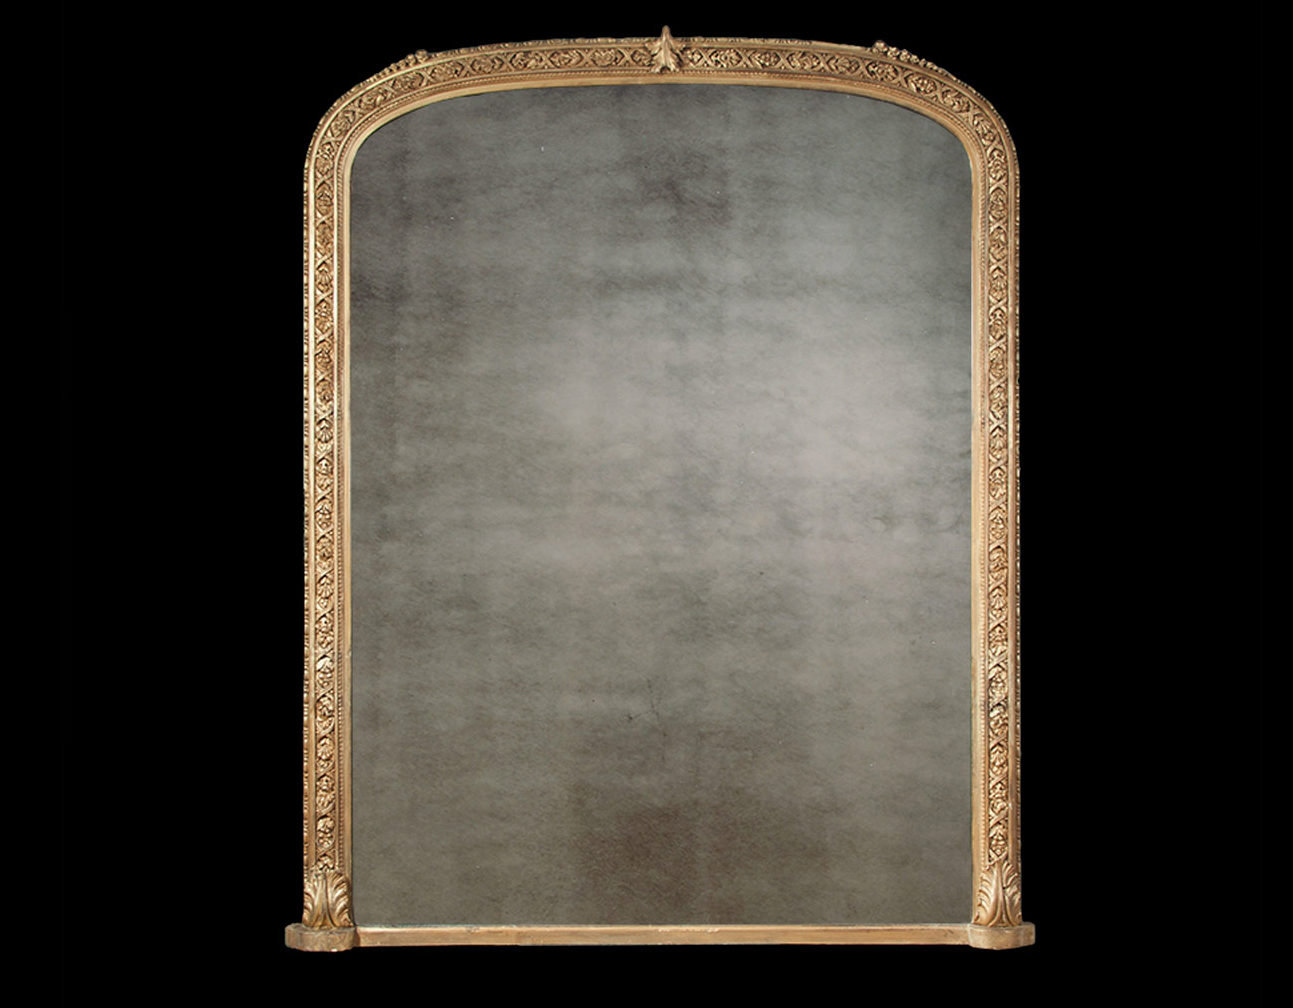 gold overmantel af035 mirrors other antiques ryan